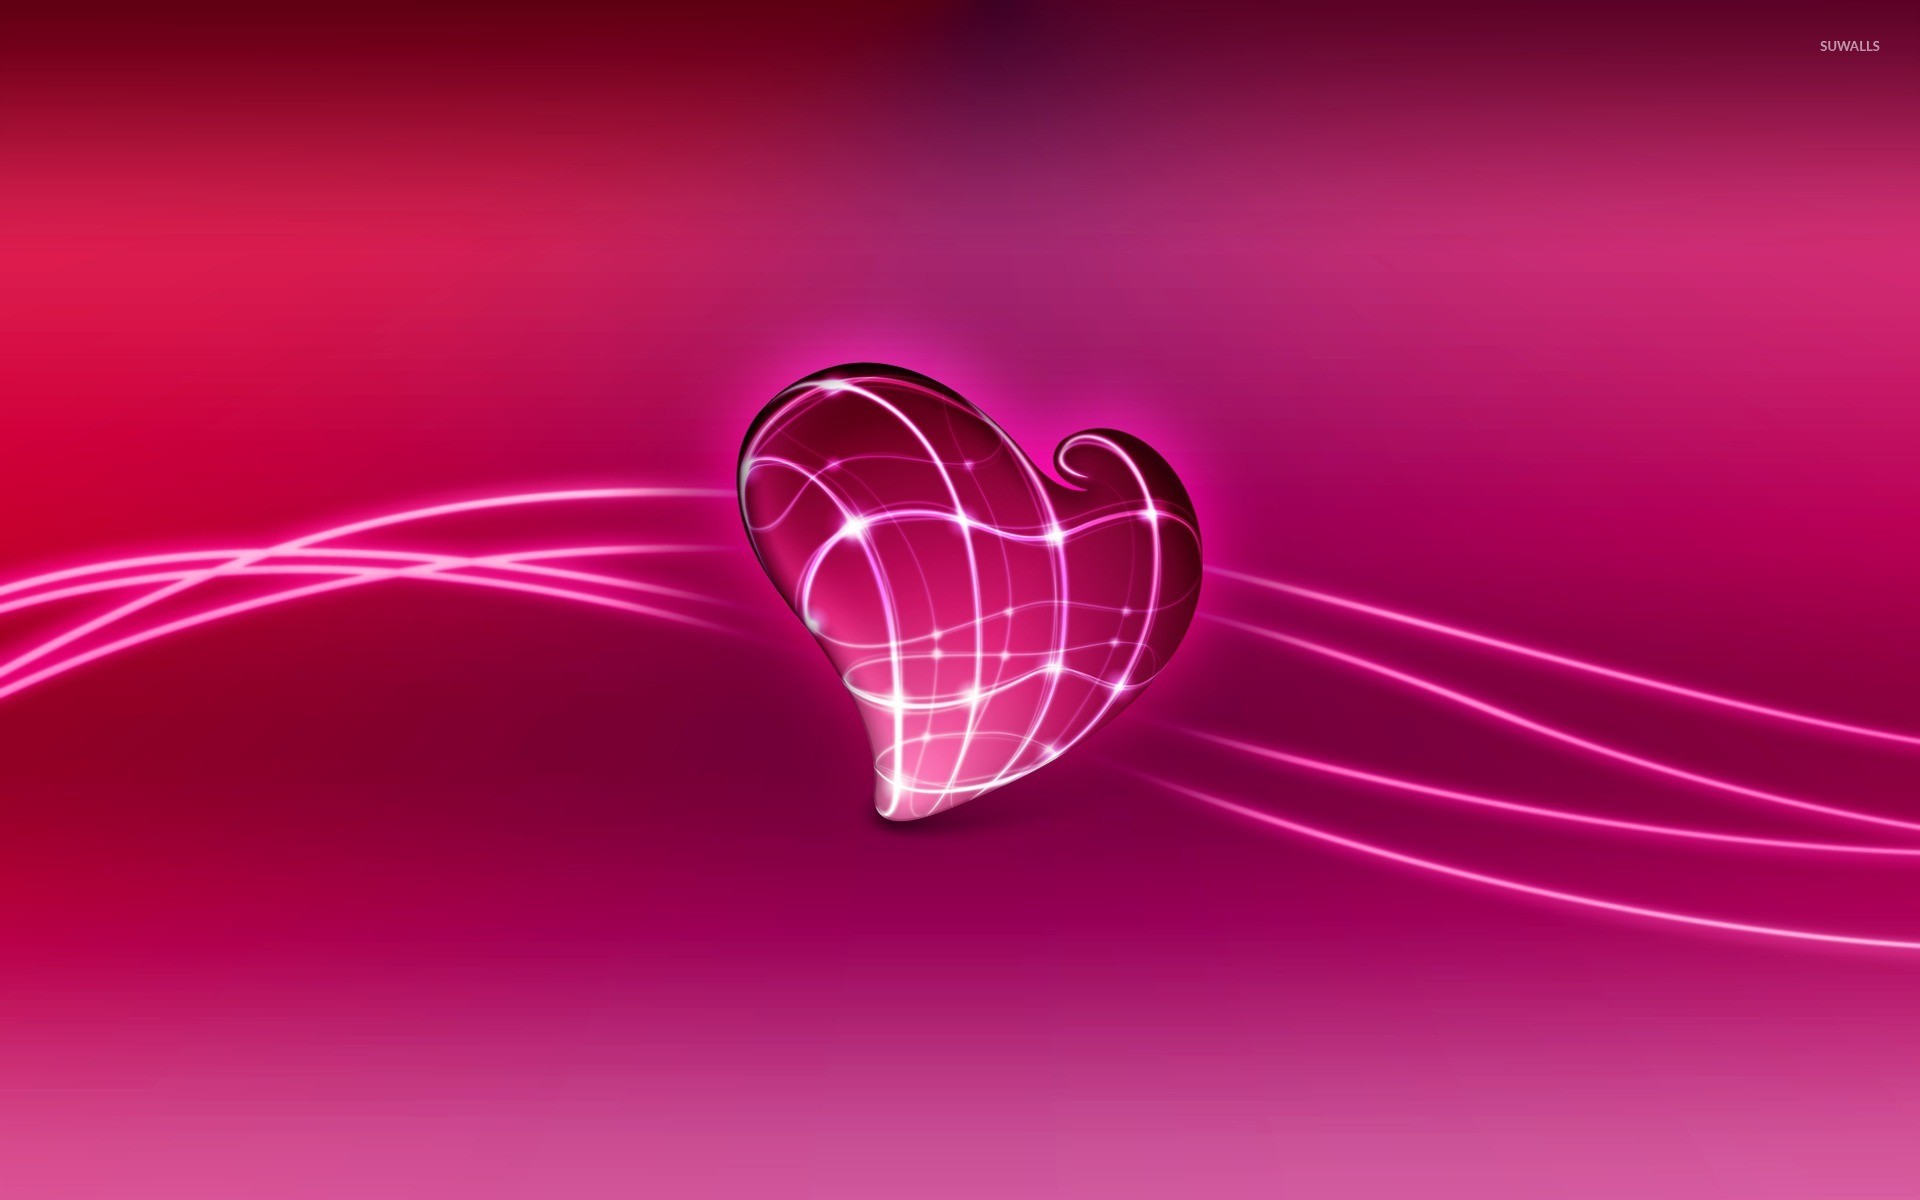 Res: 1920x1200, Neon lights on a pink heart wallpaper